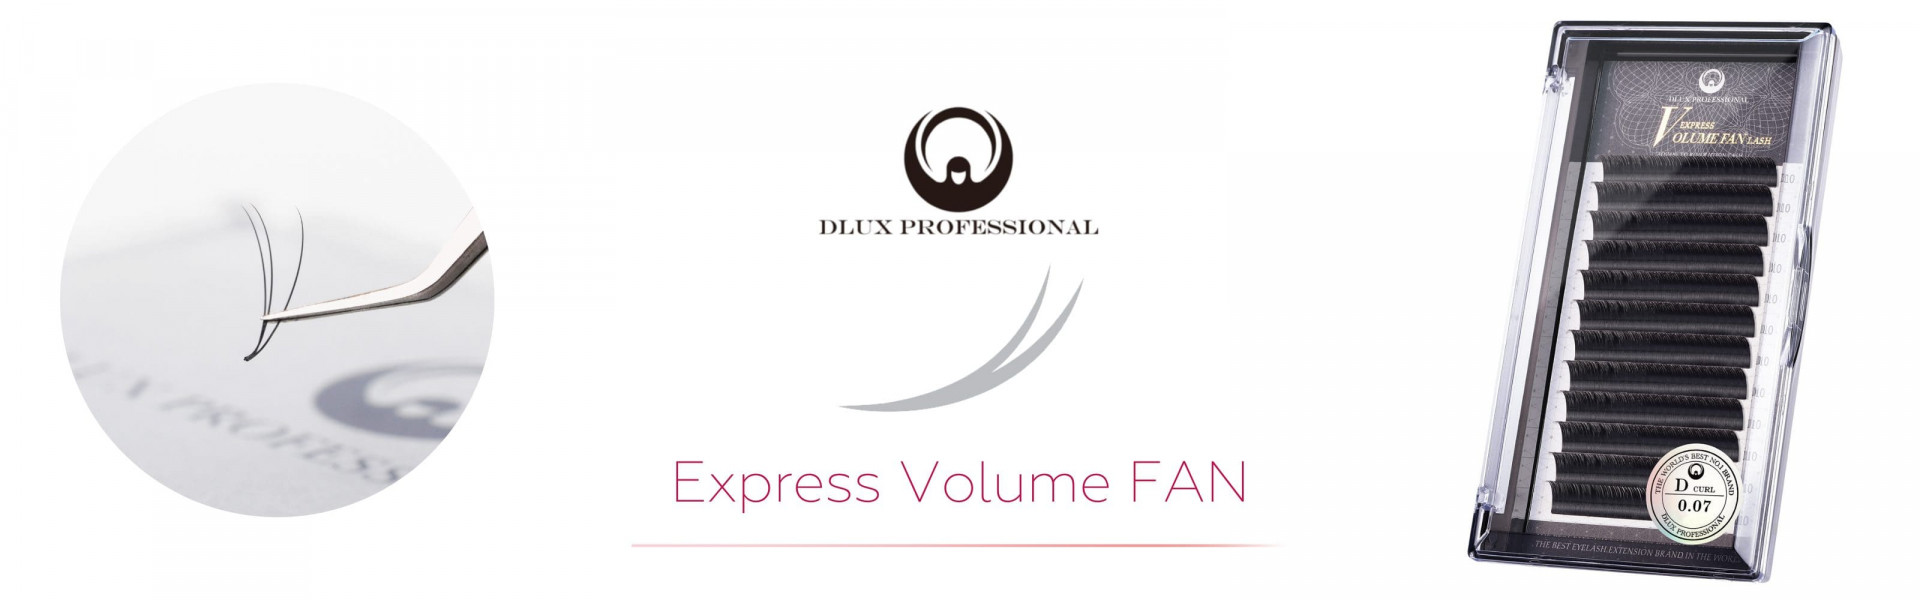 Express Volume fan